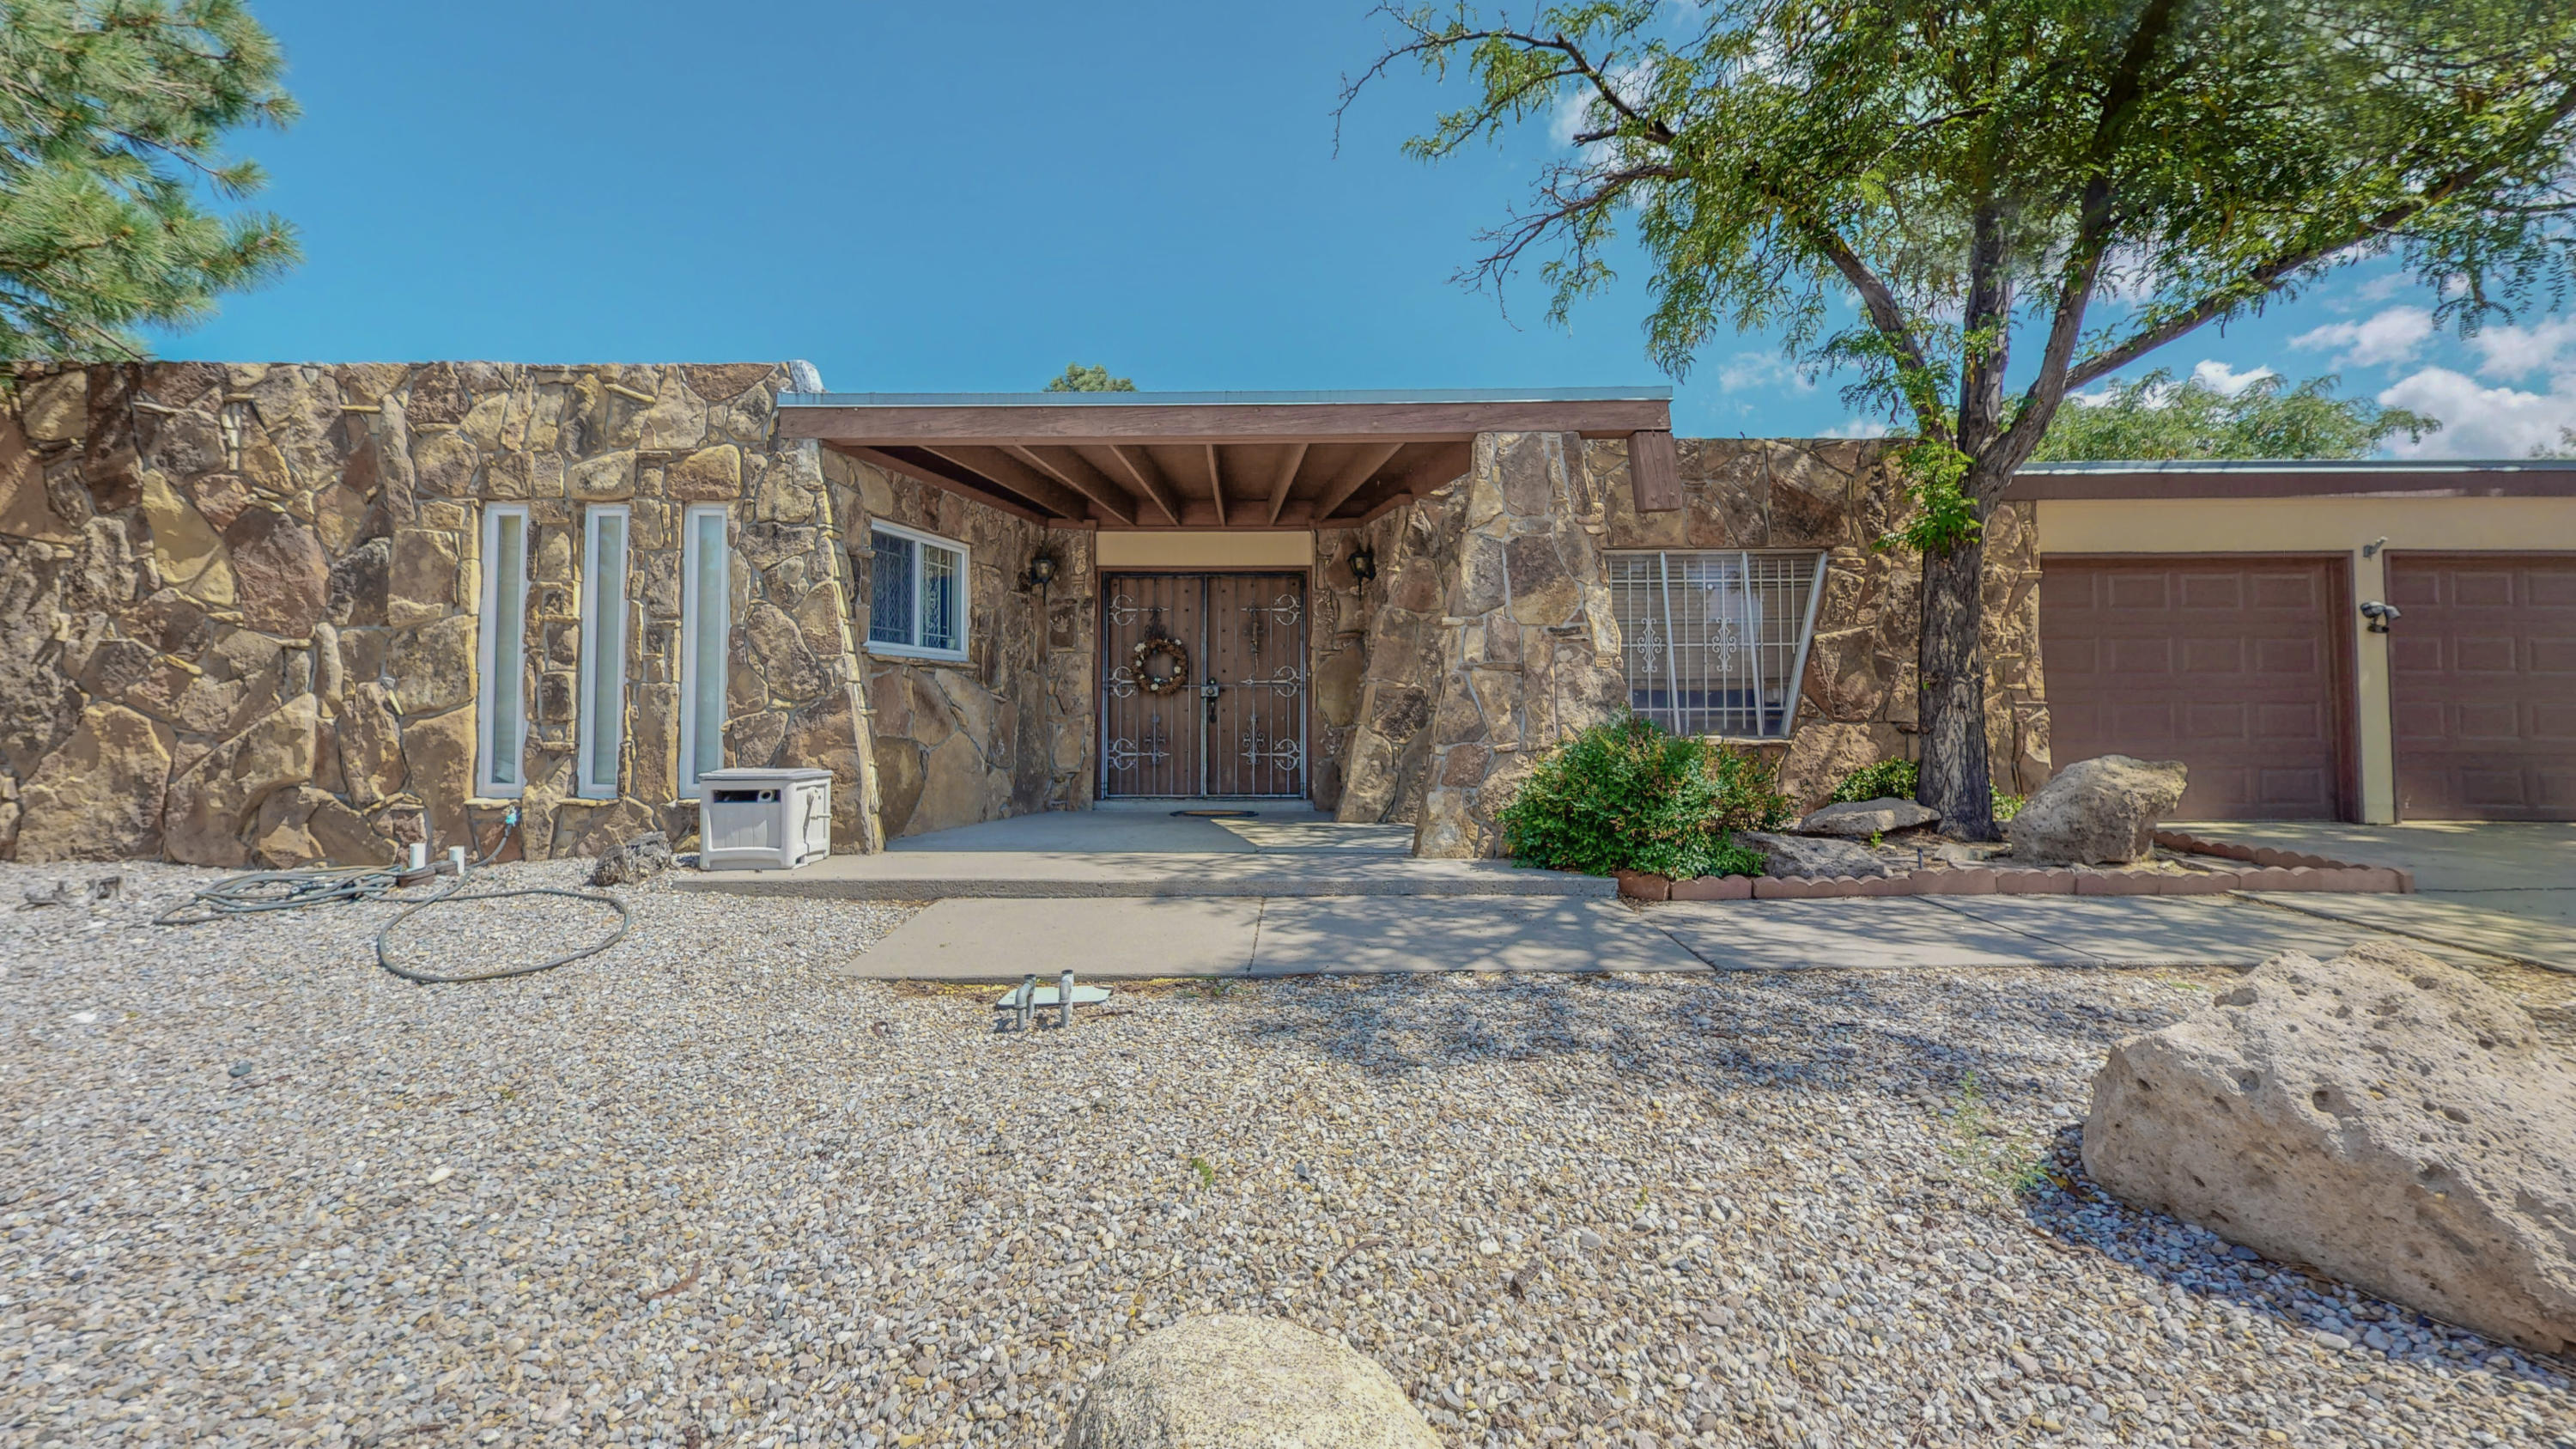 **Open House Sun 8/1 from 1pm-3pm**One of a kind home. This single level 4 bedroom, 2 living areas, 2 full baths  Mid-Century modern home is a rare find. Close to a huge park, rock exterior, cylinder shaped family room,   with a very generously sized backyard makes this a terrific find.  Separate dining room connected to the kitchen makes entertaining fun and easy. Come grab this one it won't last long. 2 car garage. Absolutely fantastic location close to I-40, Kirtland AFB, Retail and Restaurants.